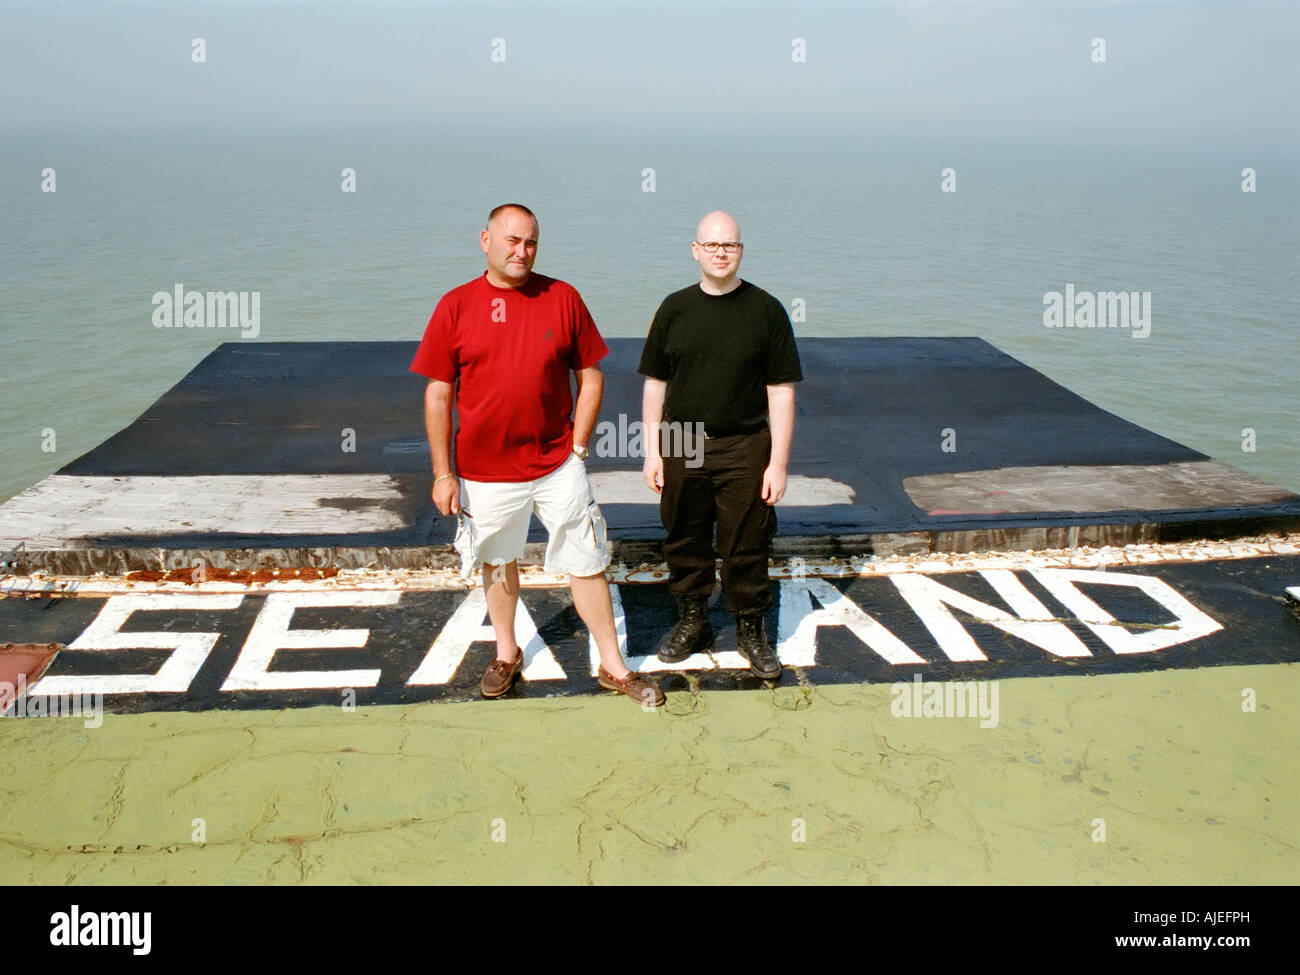 Prince Michael Bates and Havenco founder Ryan Lackey on Sealand's helipad - Stock Image